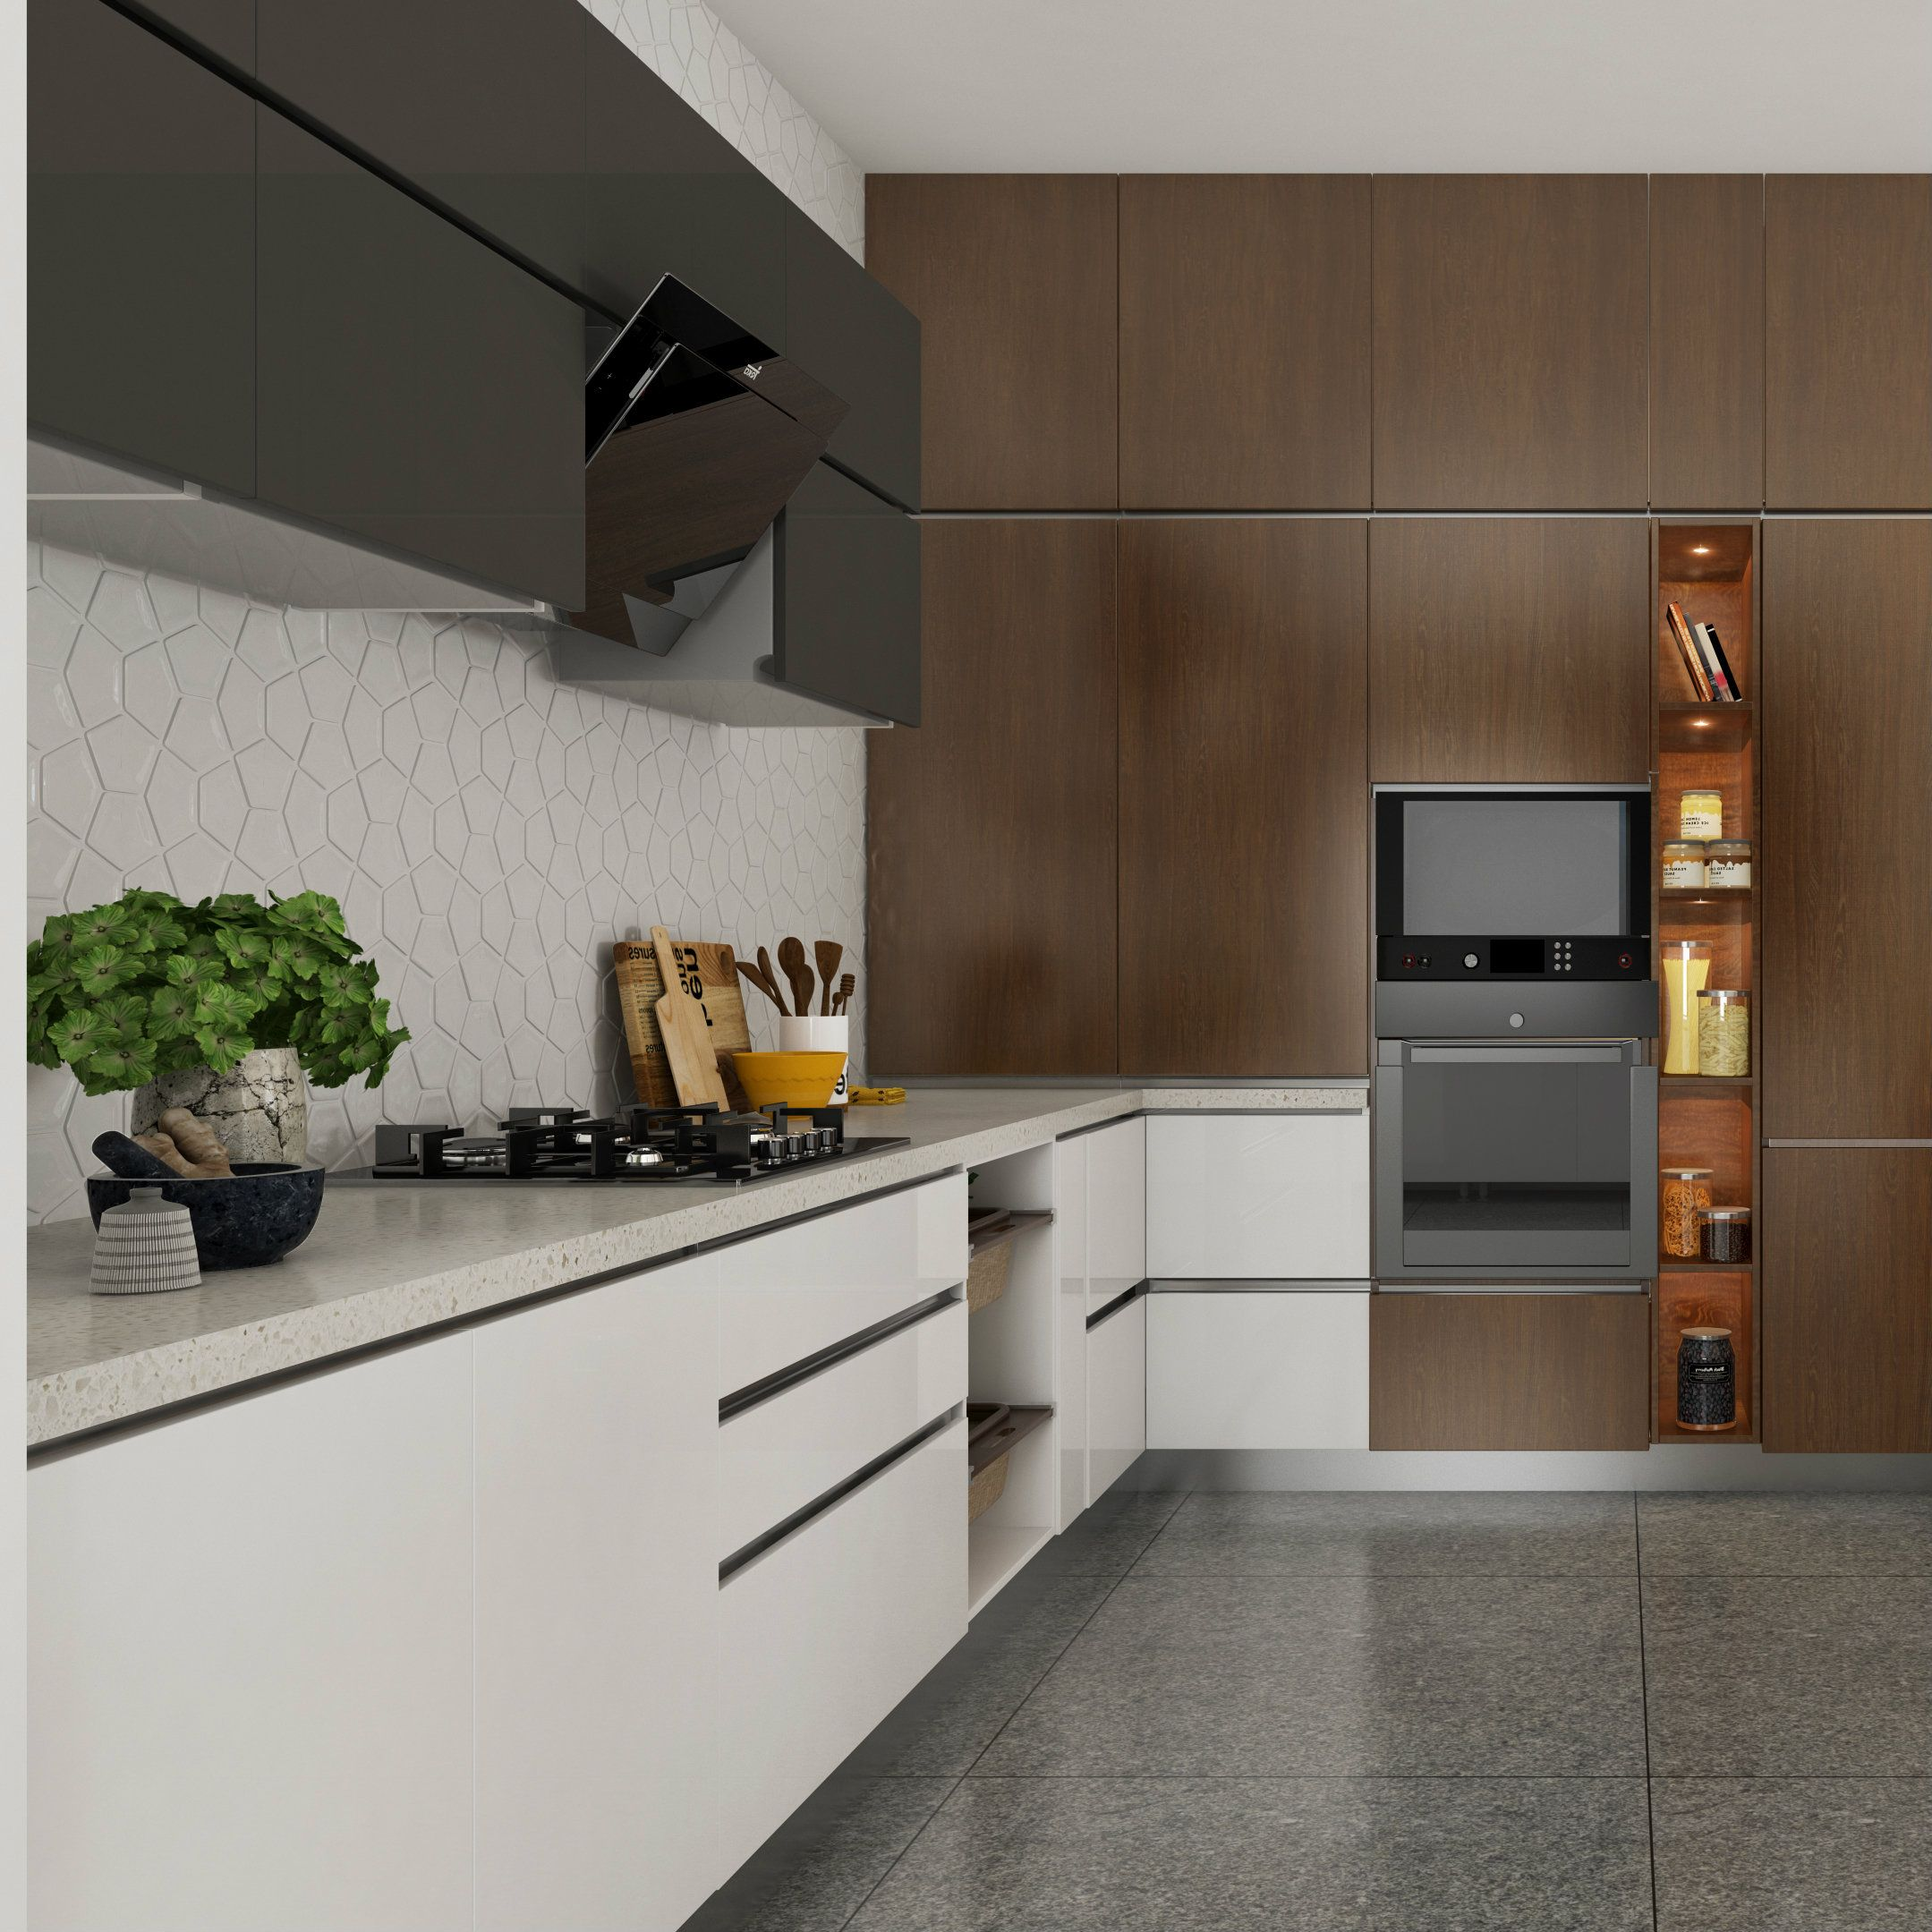 Pin On A Modular Kitchen: Black And White Modular Kitchen With A Wooden Accent Wall For Built In Appliances. The Back